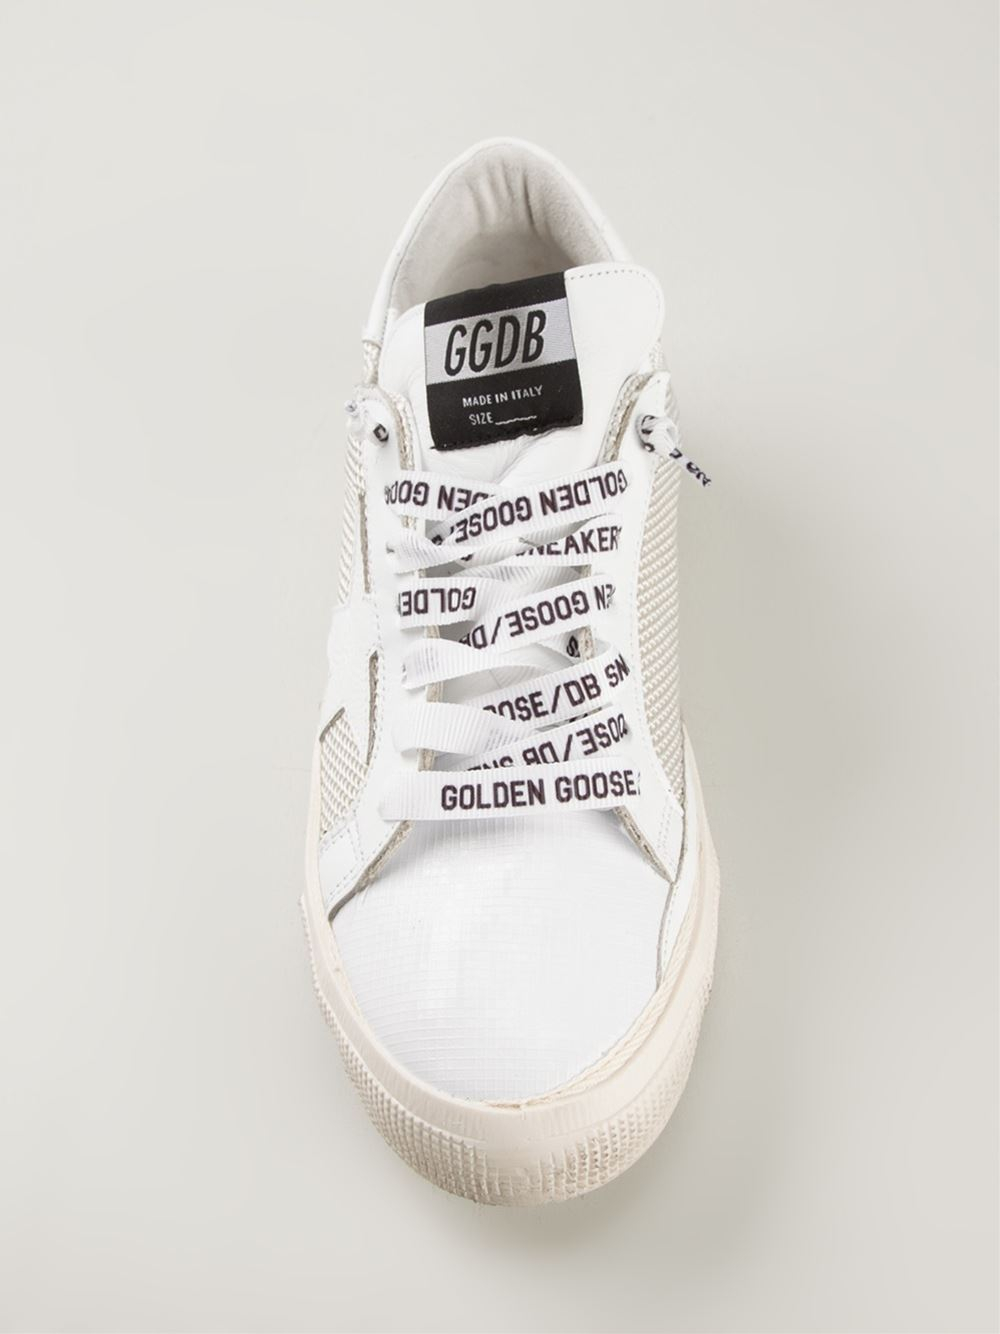 2018 New Online May sneakers - White Golden Goose Top Quality NrMssQ1T2O